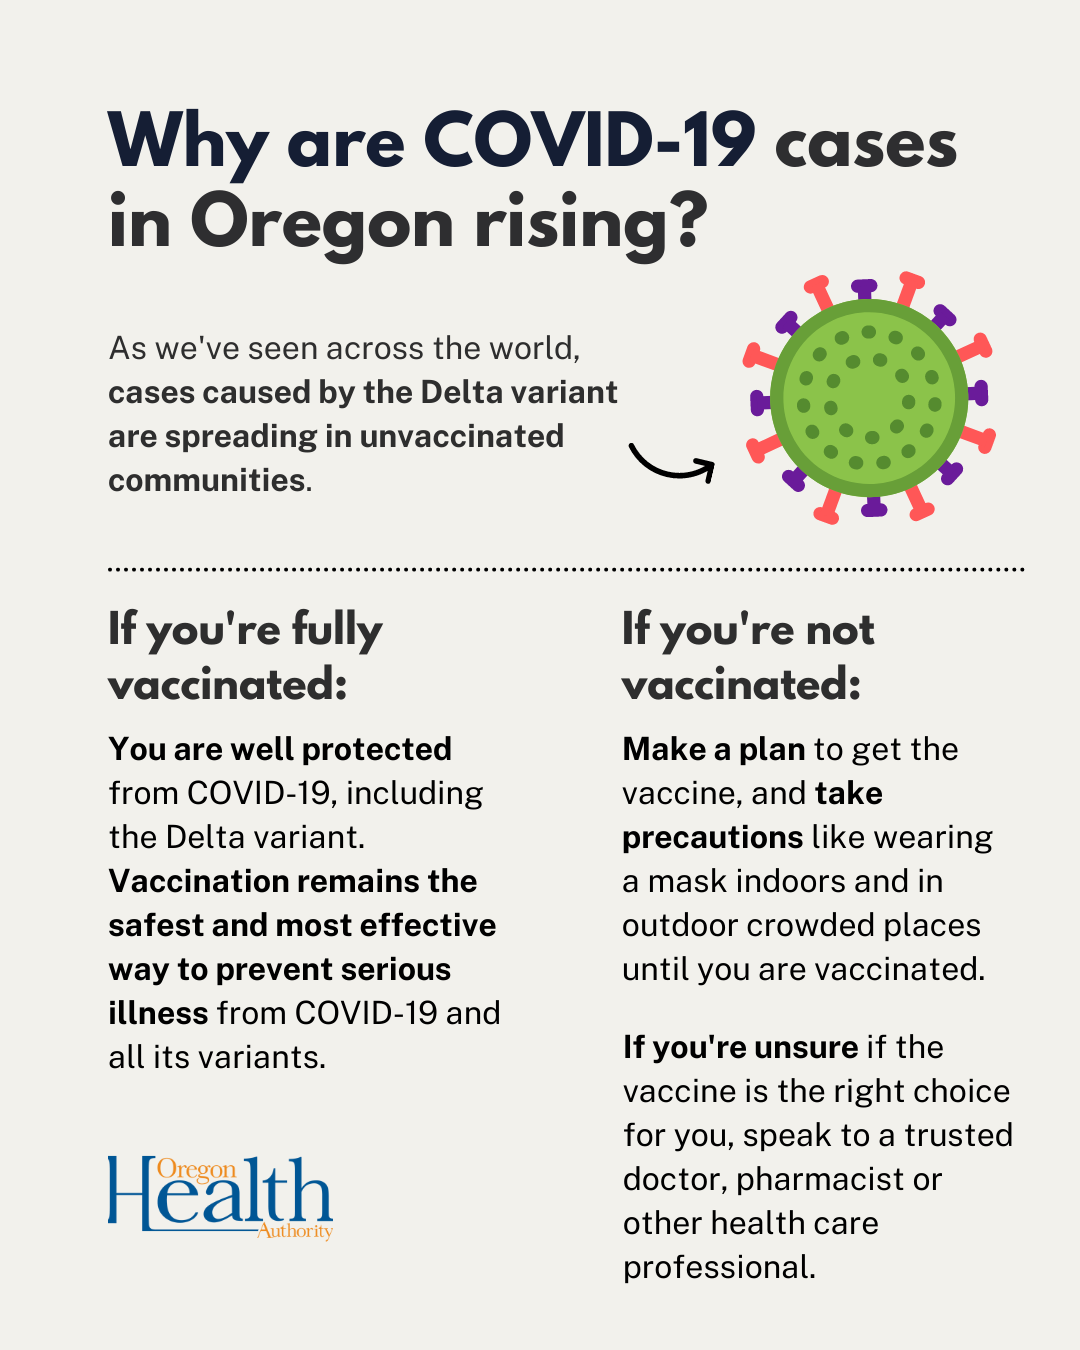 COVID-19 cases and vaccines